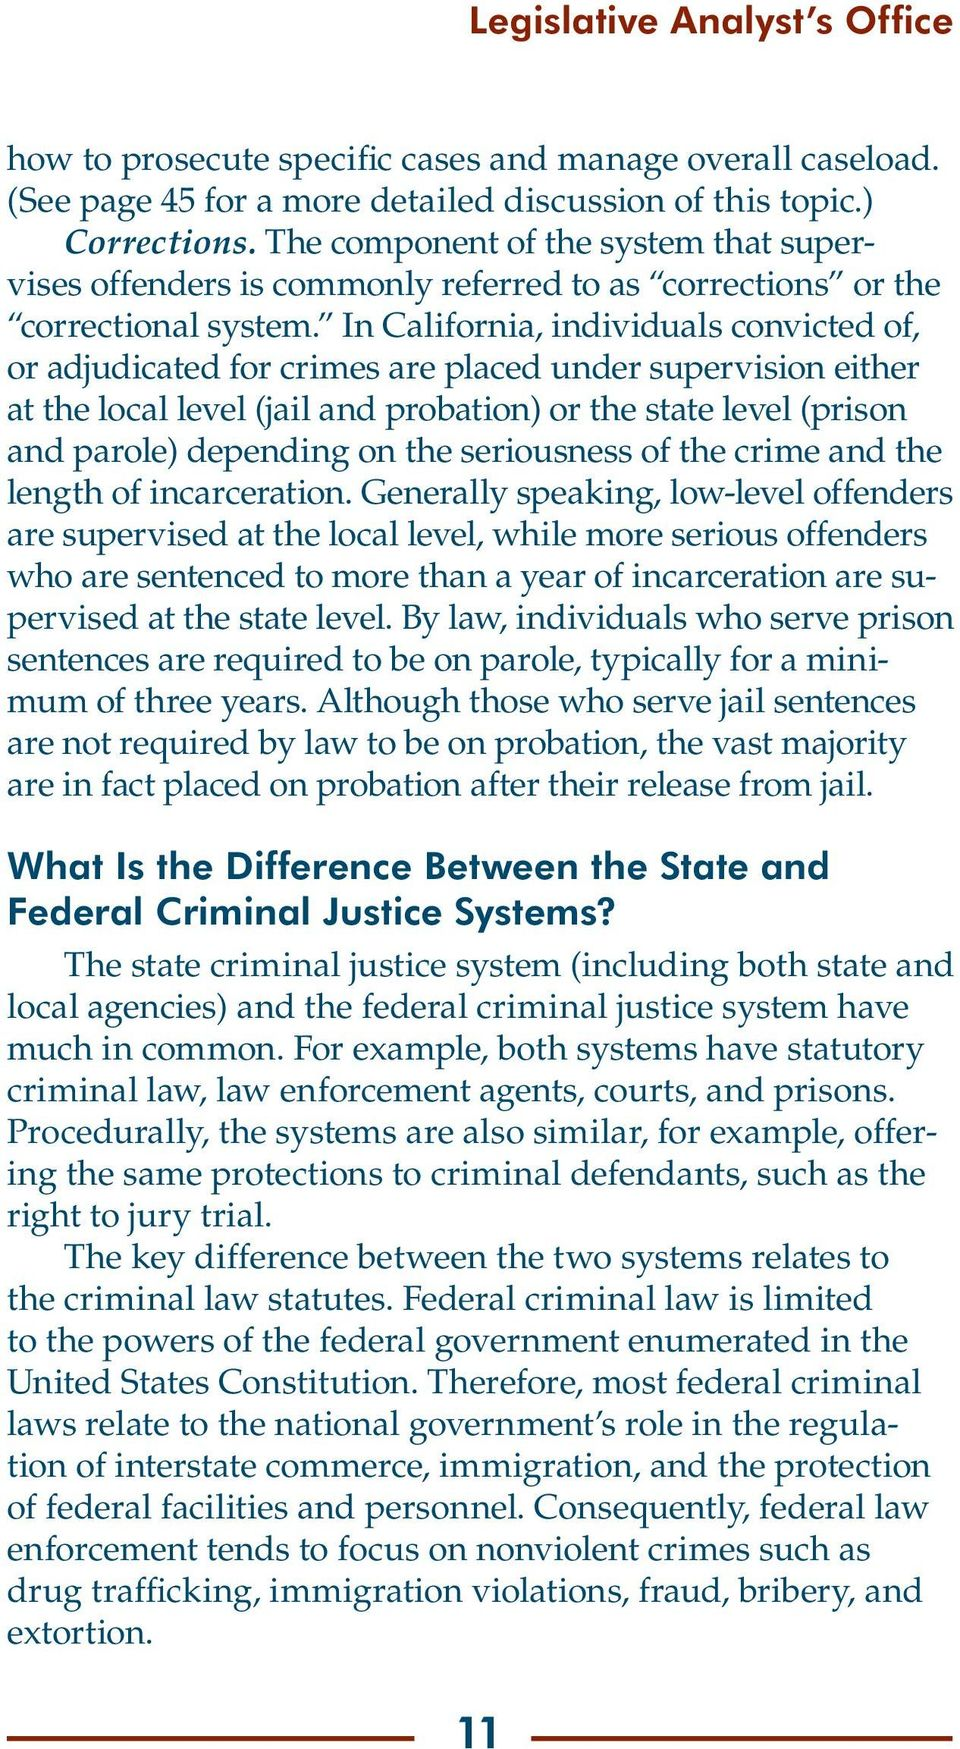 In California, individuals convicted of, or adjudicated for crimes are placed under supervision either at the local level (jail and probation) or the state level (prison and parole) depending on the